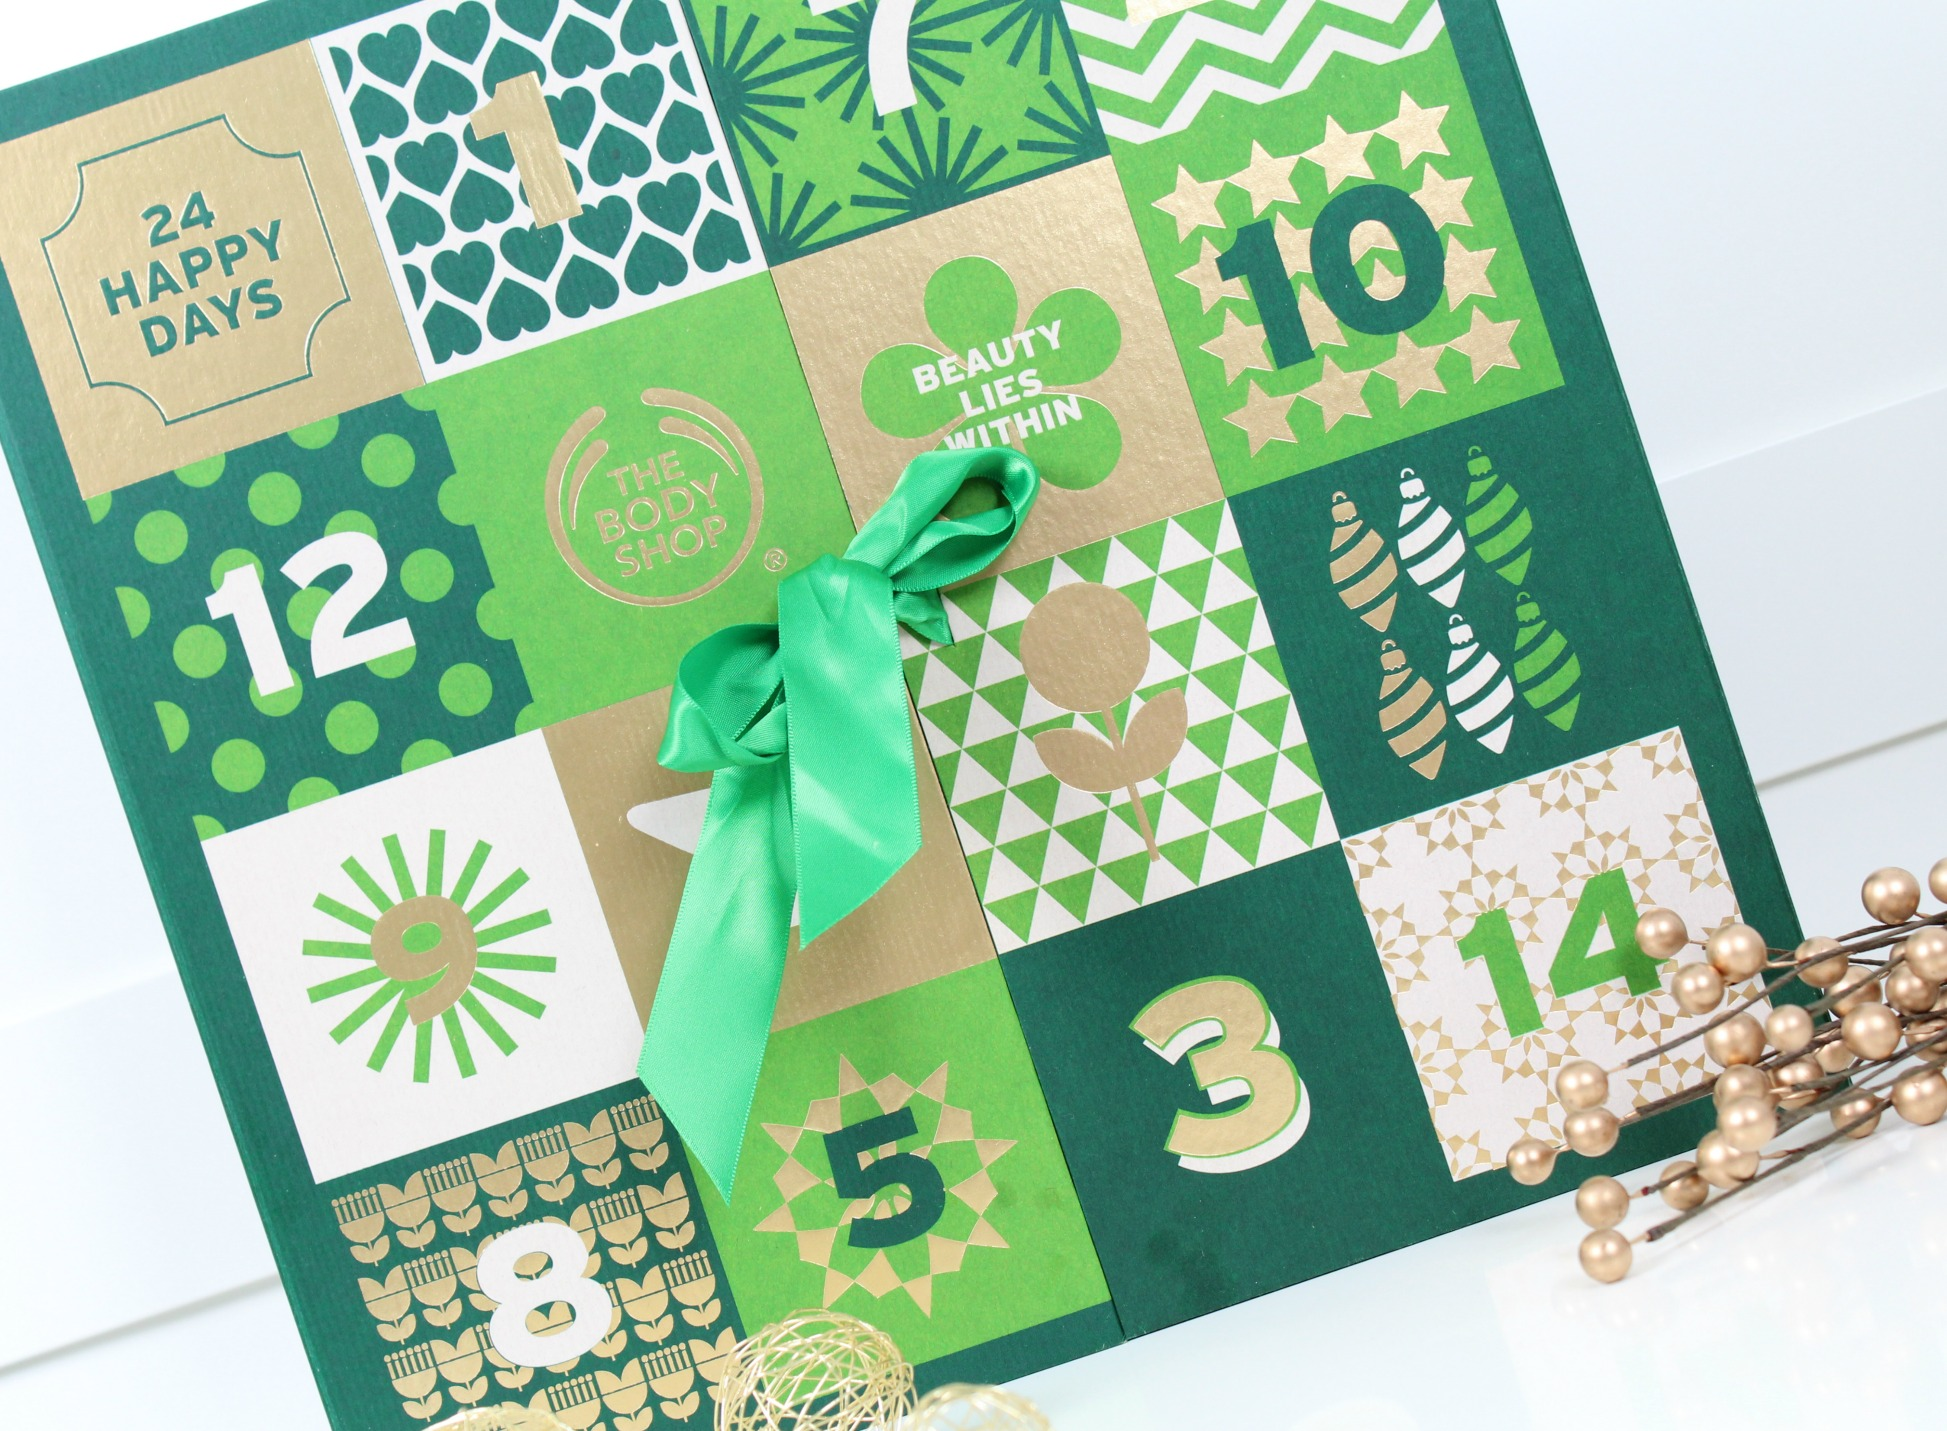 wat-zit-er-in-the-body-shop-adventskalender-2016-standard_goodgirlscompany